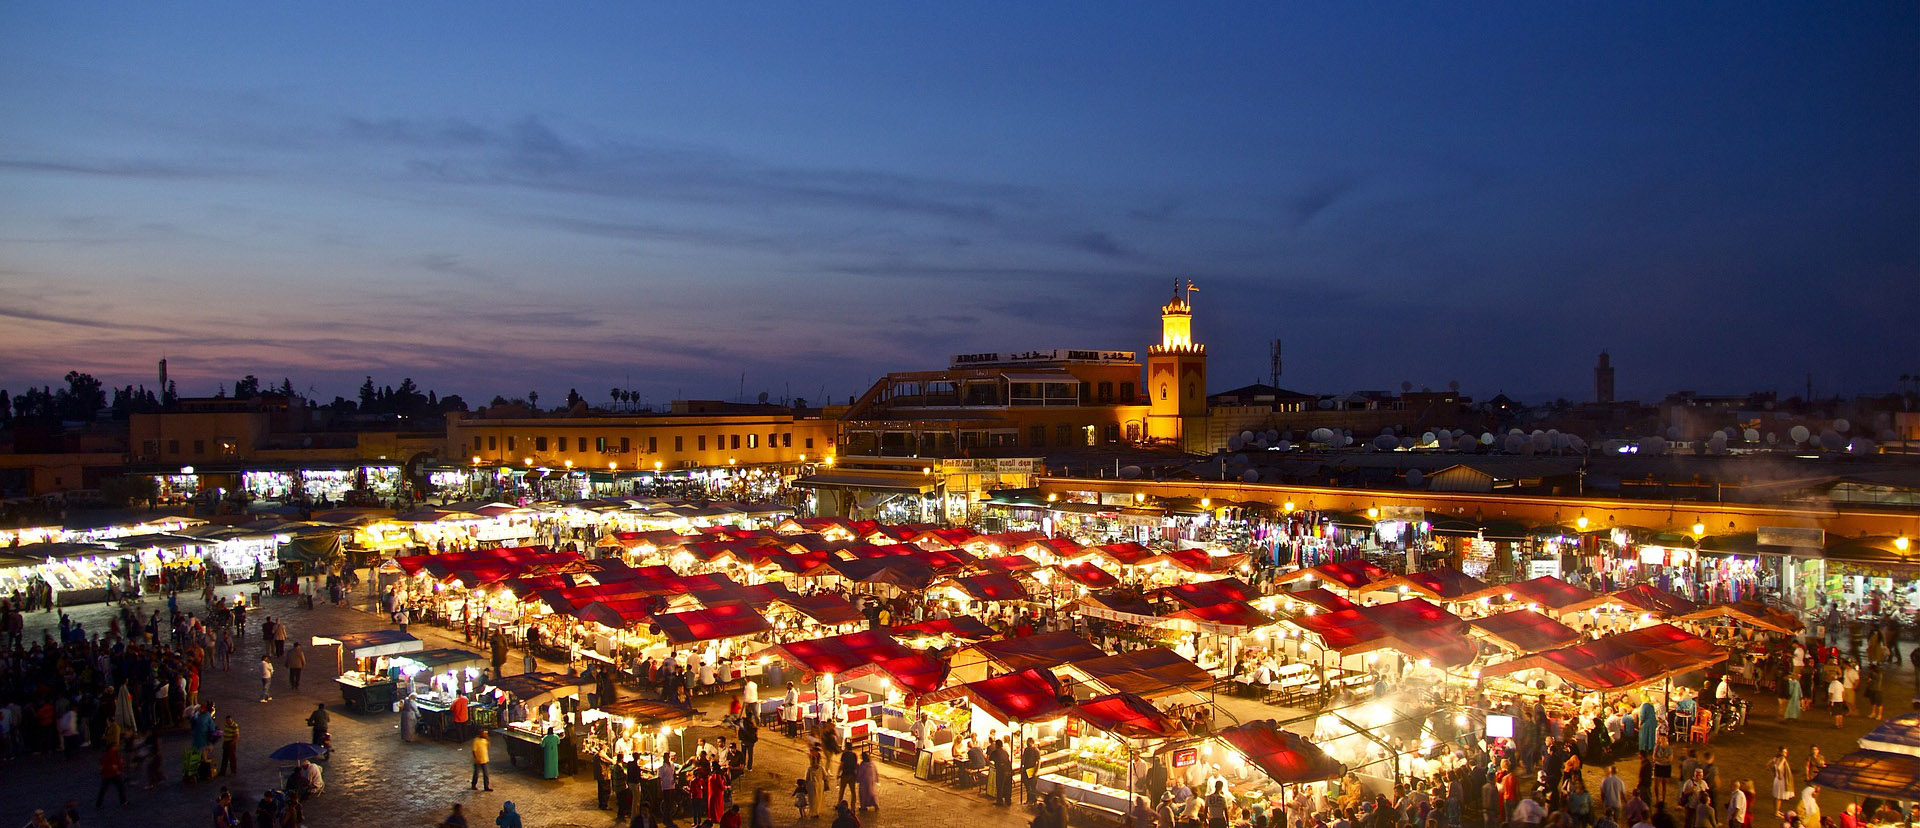 New Ryanair flights to Marrakesh from Schönefeld